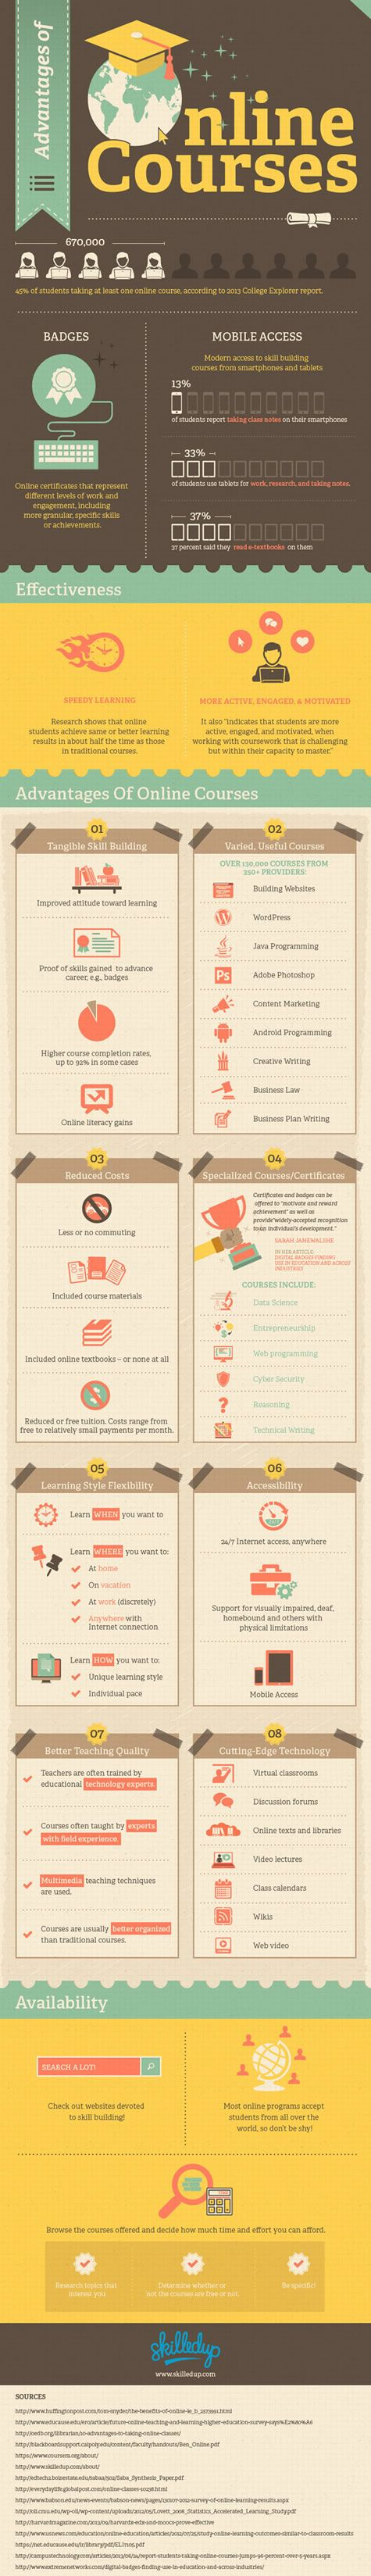 INFOGRAPHIC: Advantages of online learning